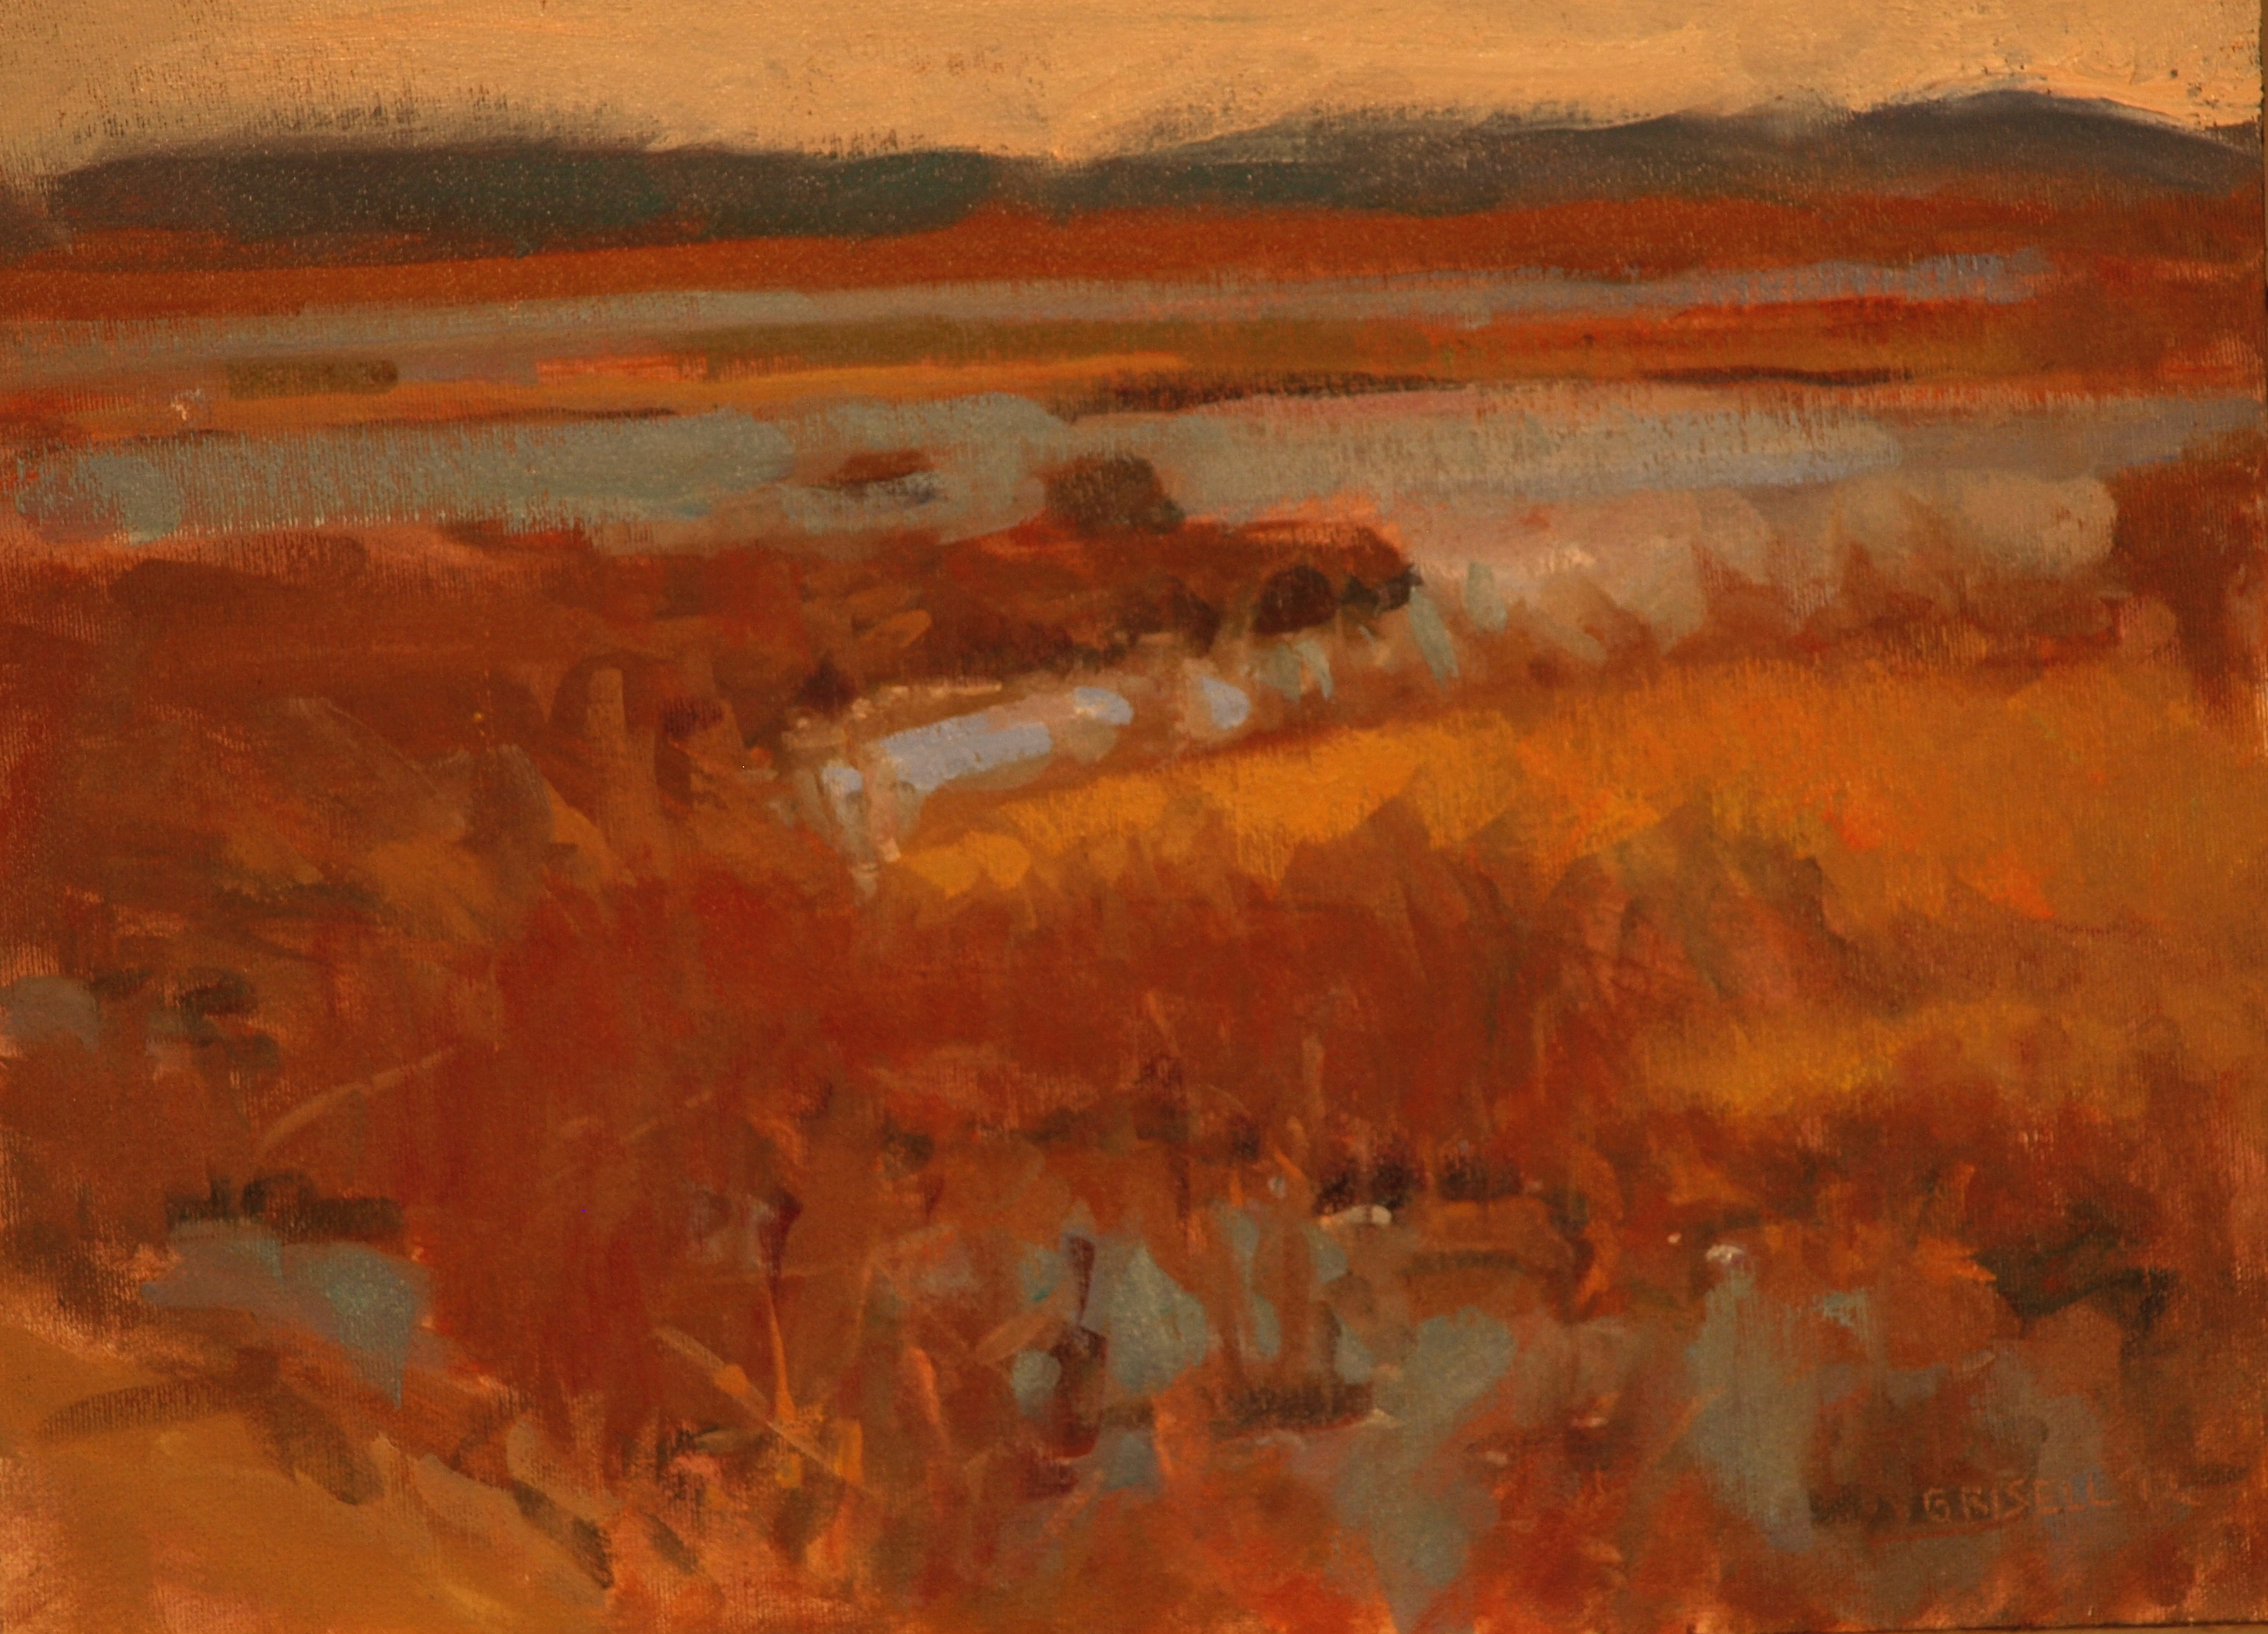 Plum Island Marsh, Oil on Canvas on Panel, 12 x 16 Inches, by Susan Grisell, $275